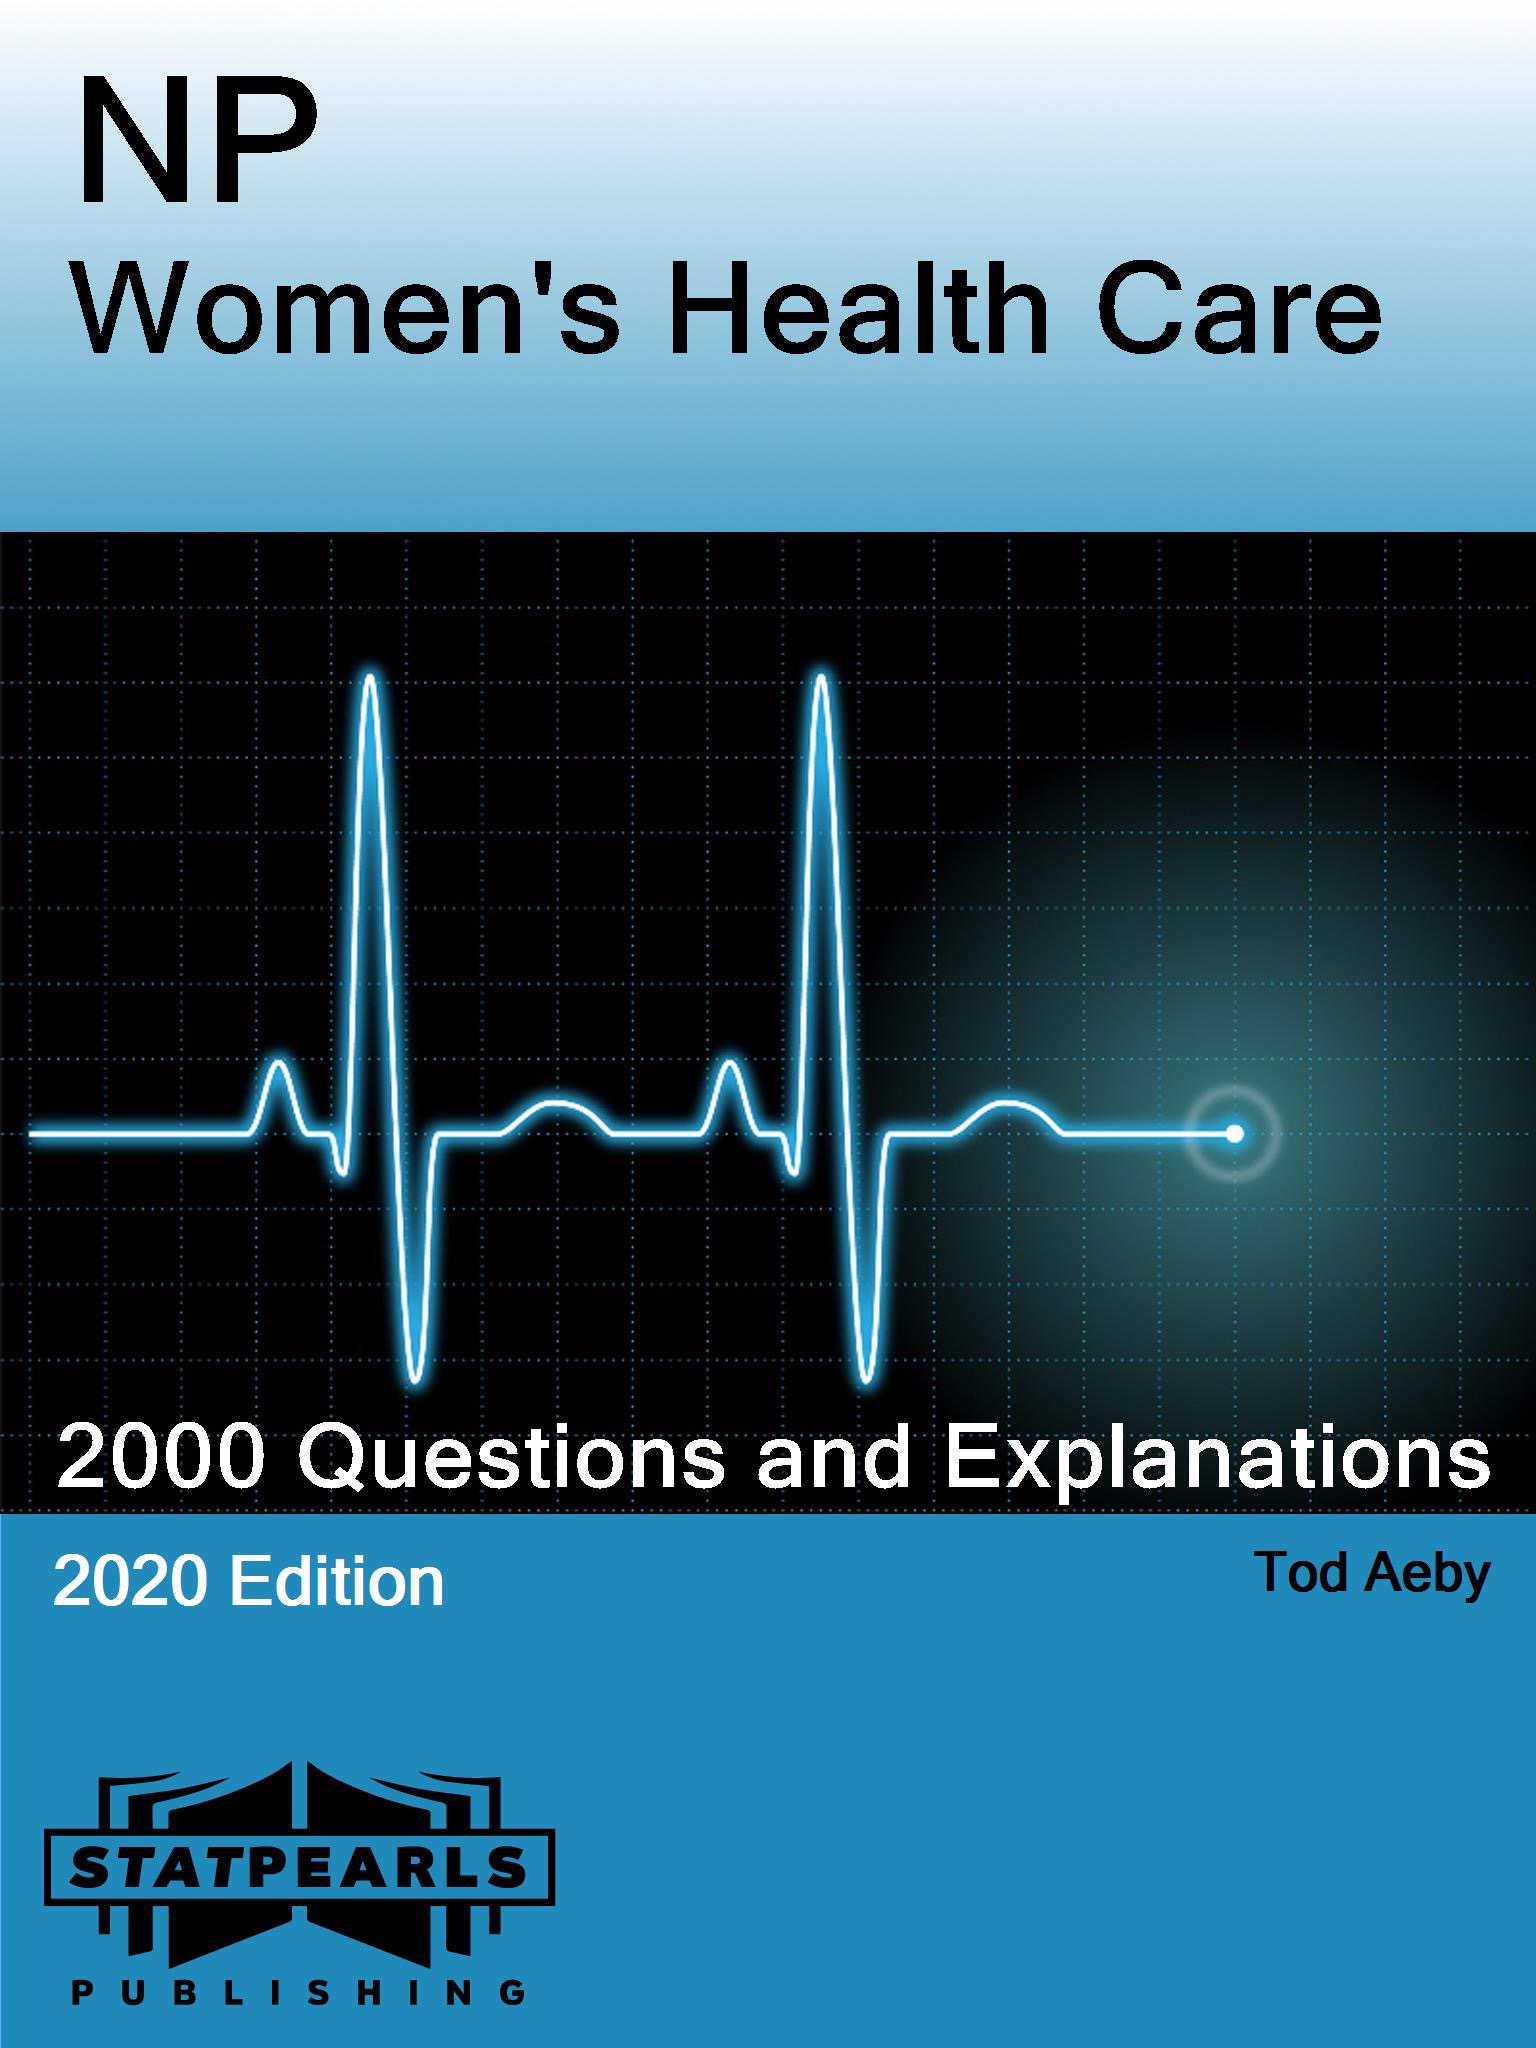 NP Women's Health Care